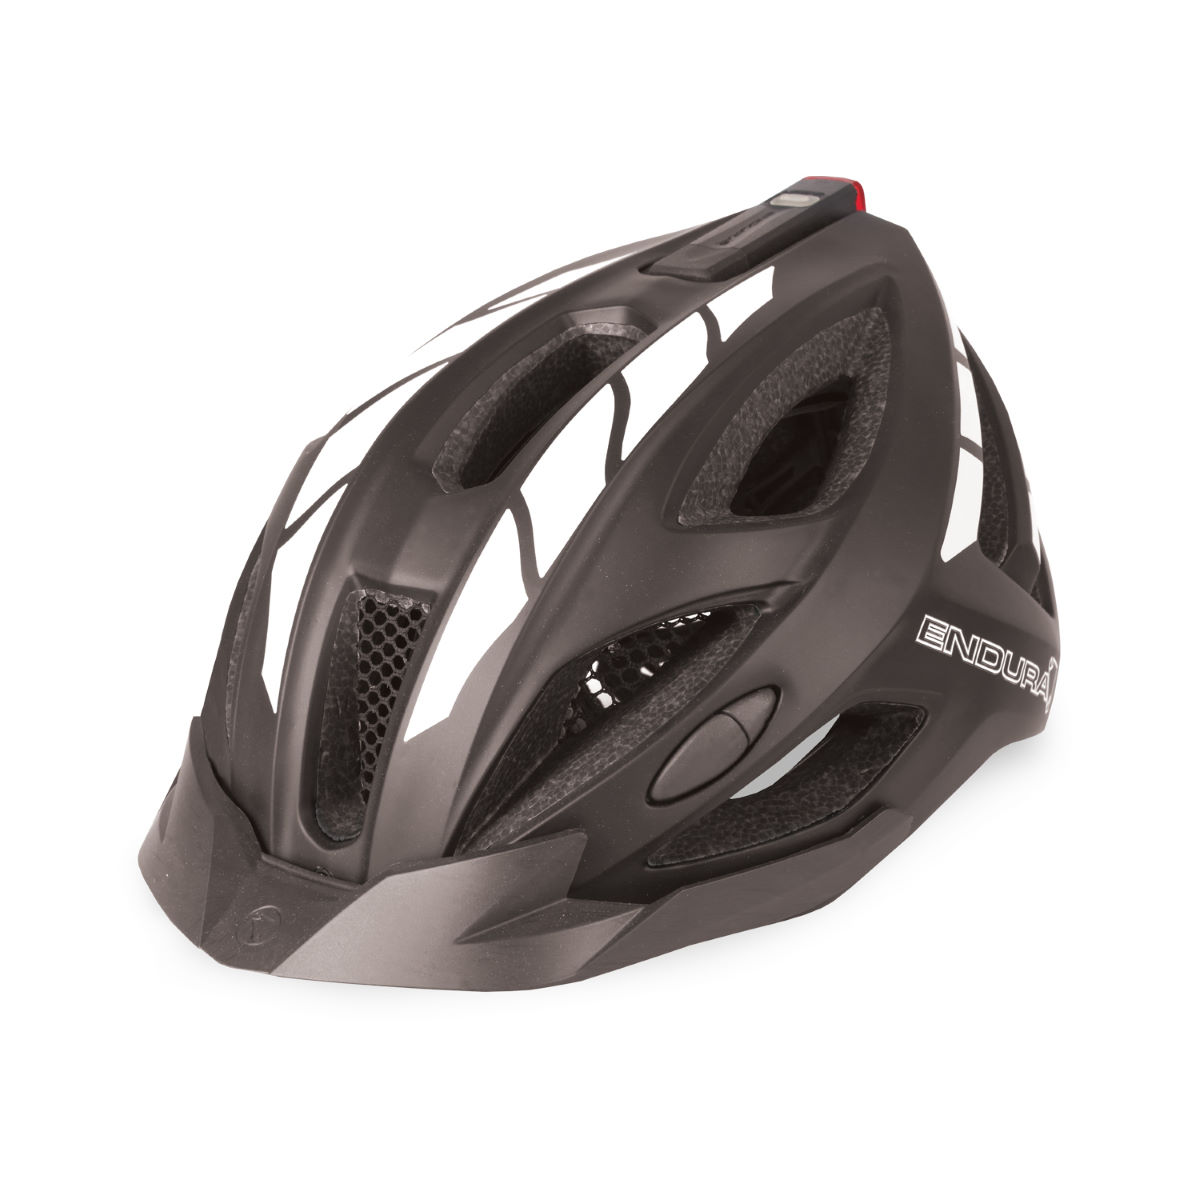 Casco Endura Luminite - Cascos para el ocio